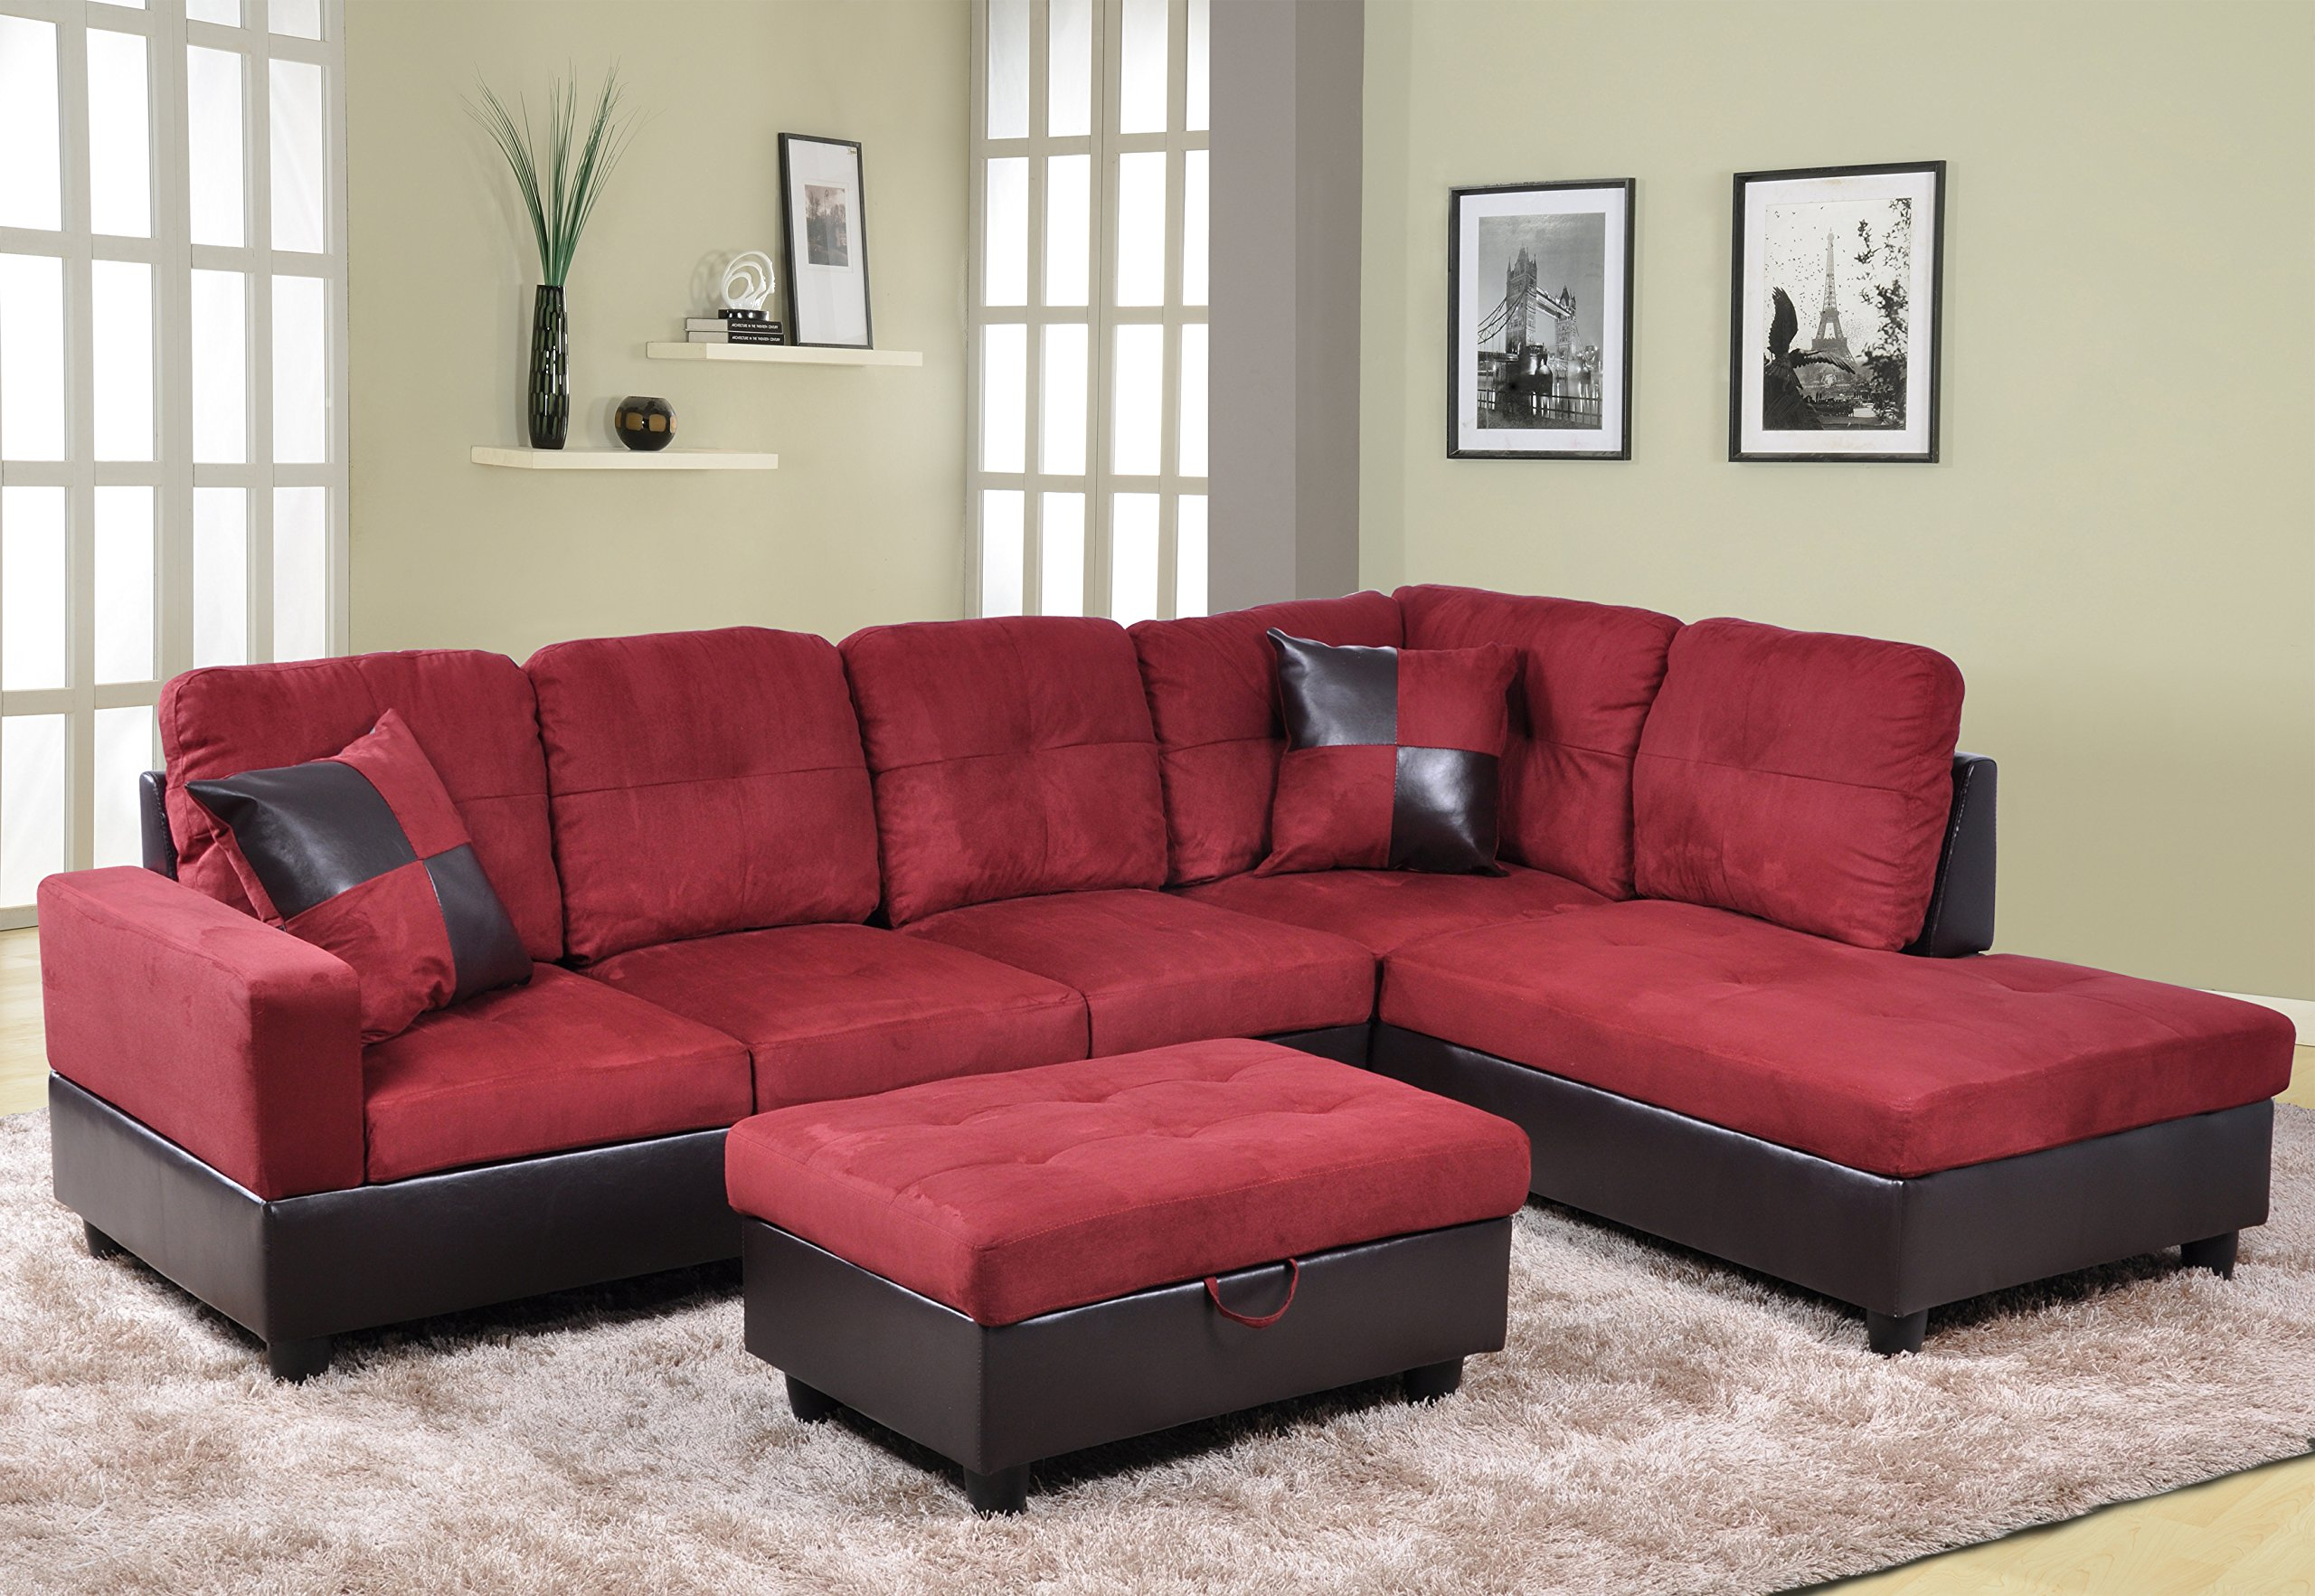 Beverly Fine Furniture Andes Microfiber with Faux Leather Sofa Set With Ottoman, Red Raspberry by Beverly Fine Furniture